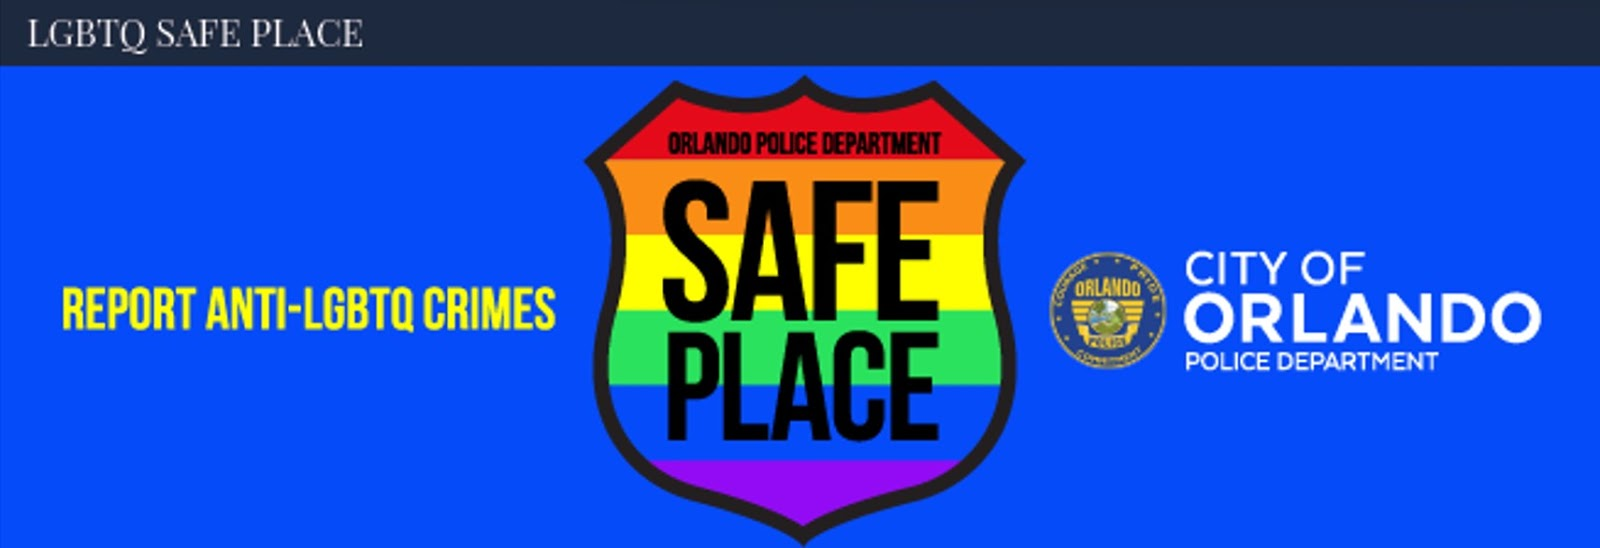 orlando s safe place initiative solace locations for lgbtqp makes me wonder if a program that begins via self designation will turn into government imposition along which will come legal fines and or certain